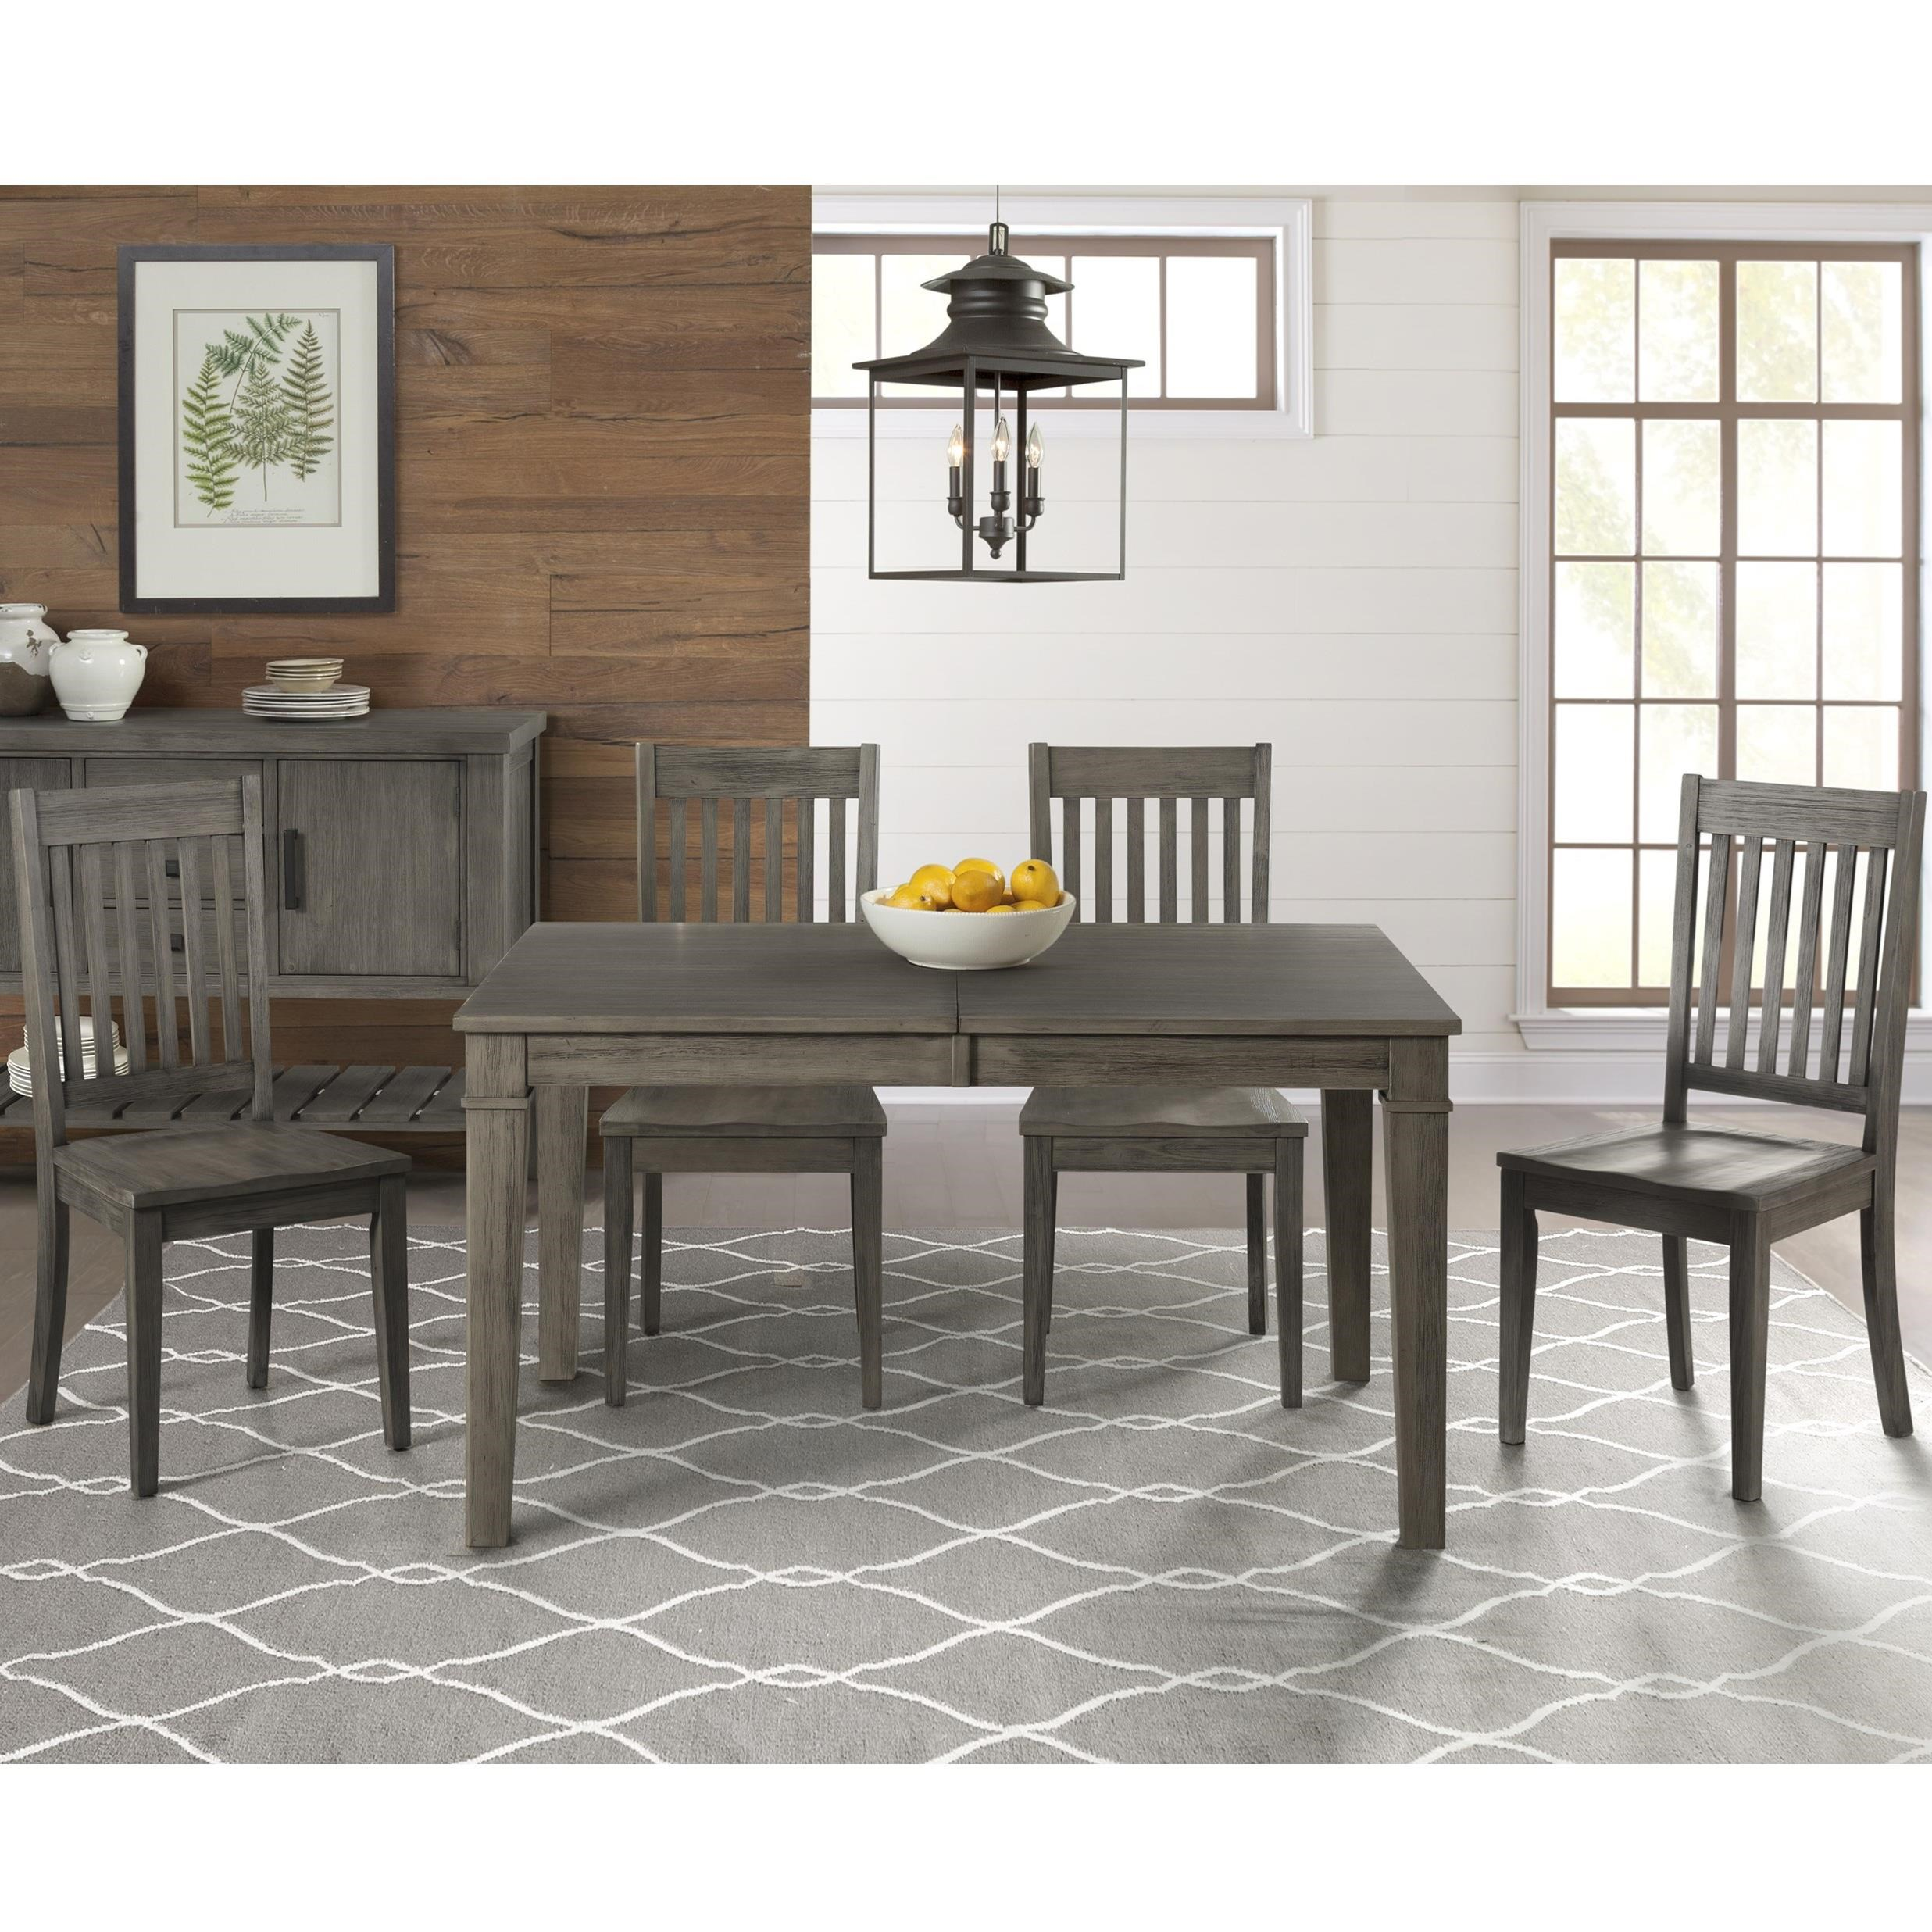 Huron Table and Chair Set by AAmerica at Zak's Home